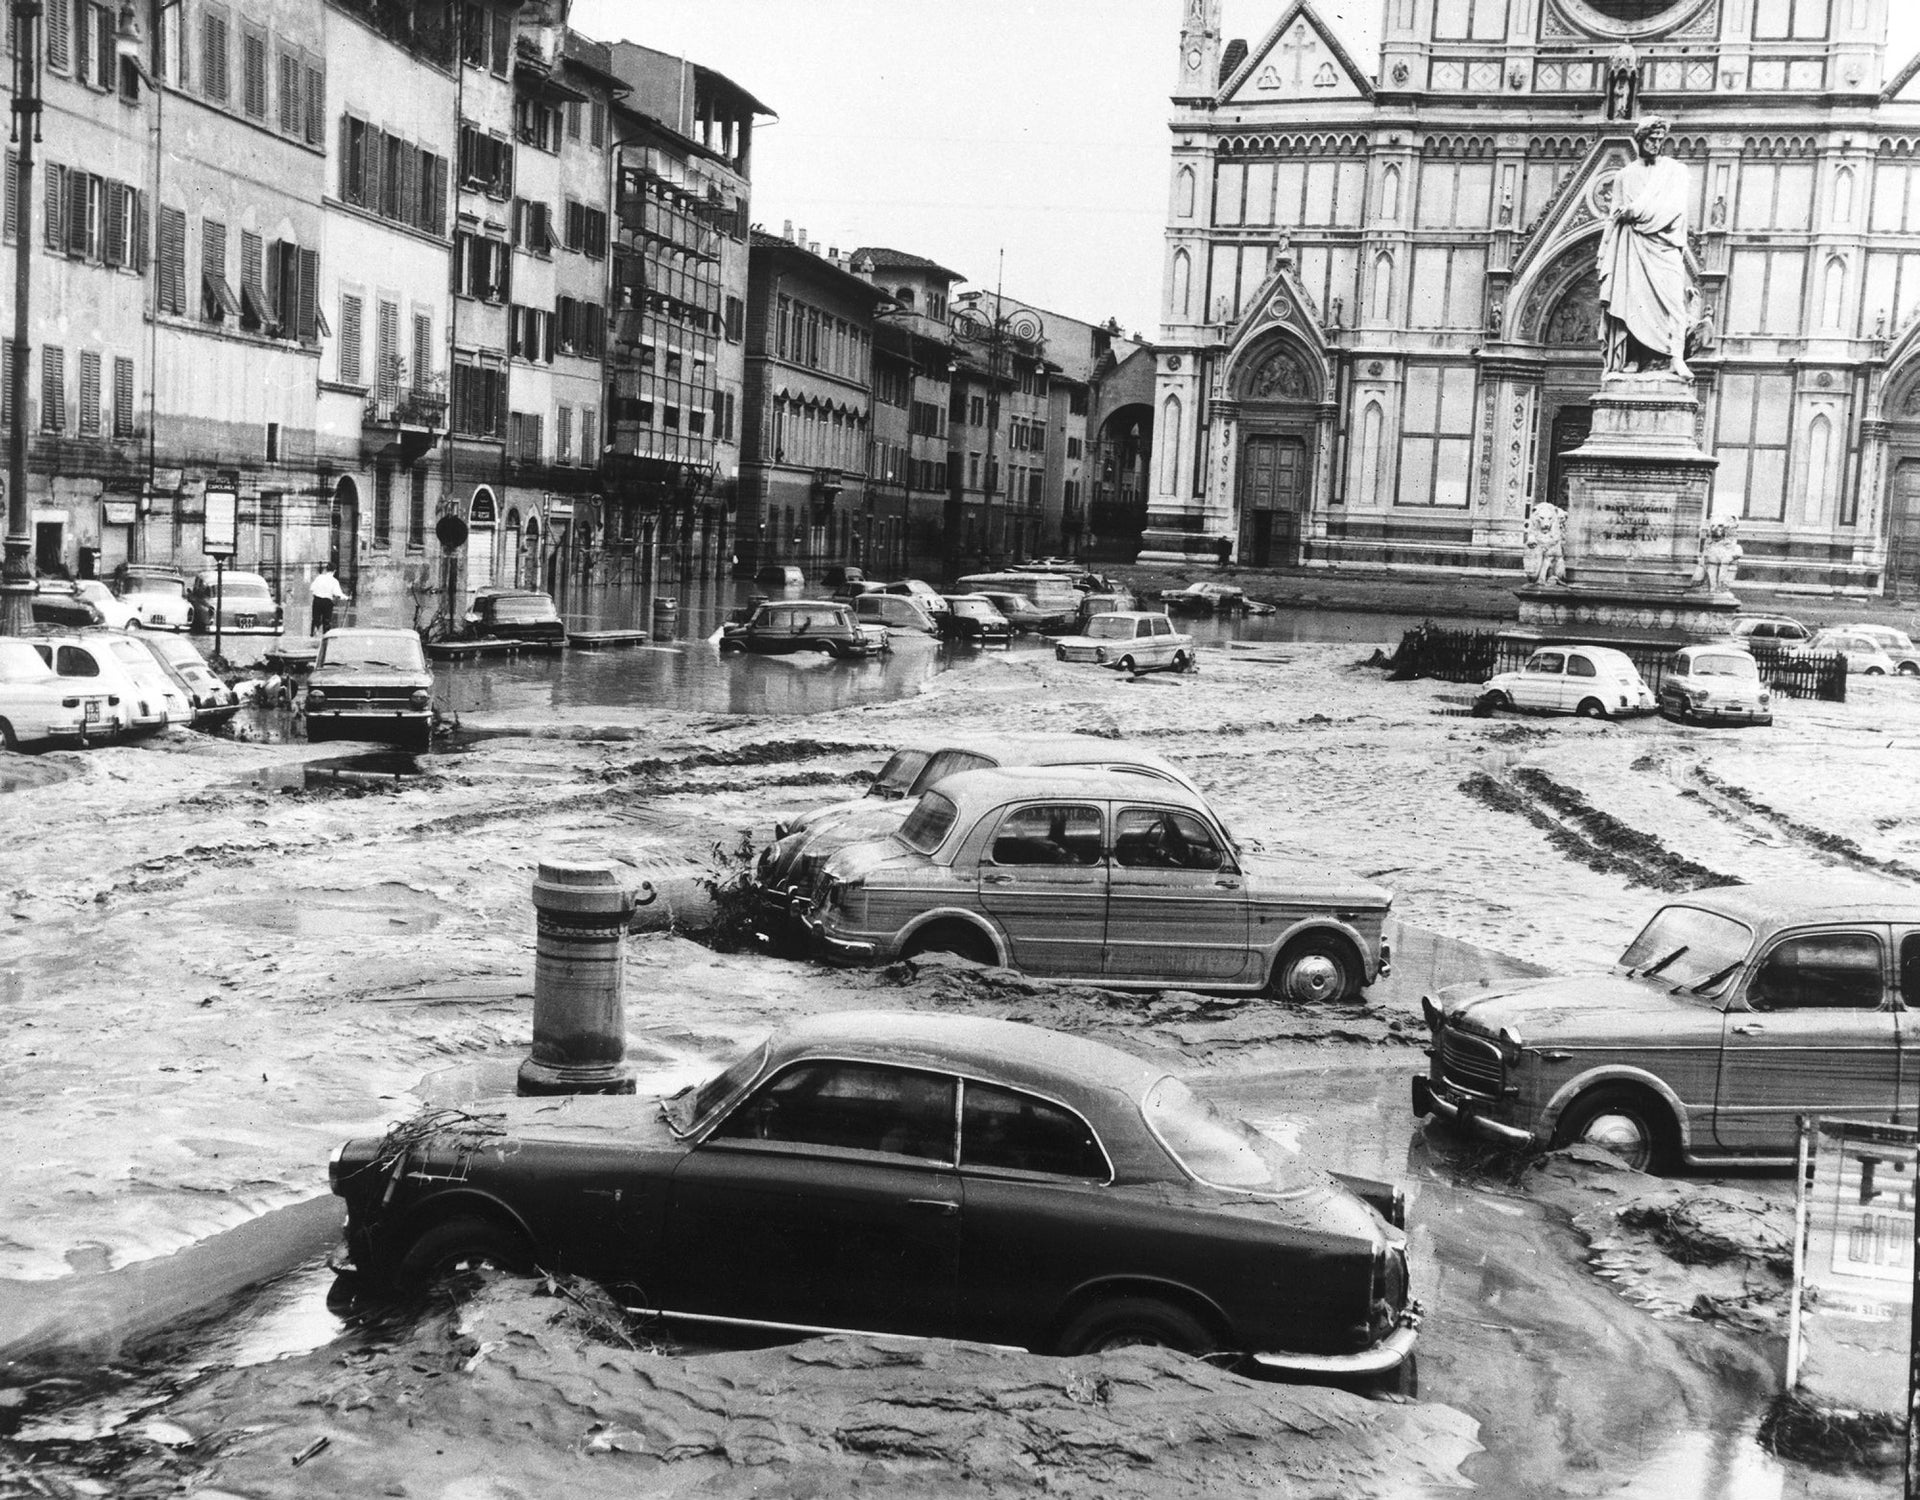 The square in front of the Basilica of Santa Croce after the banks of the River Arno overflowed and flooded the city.